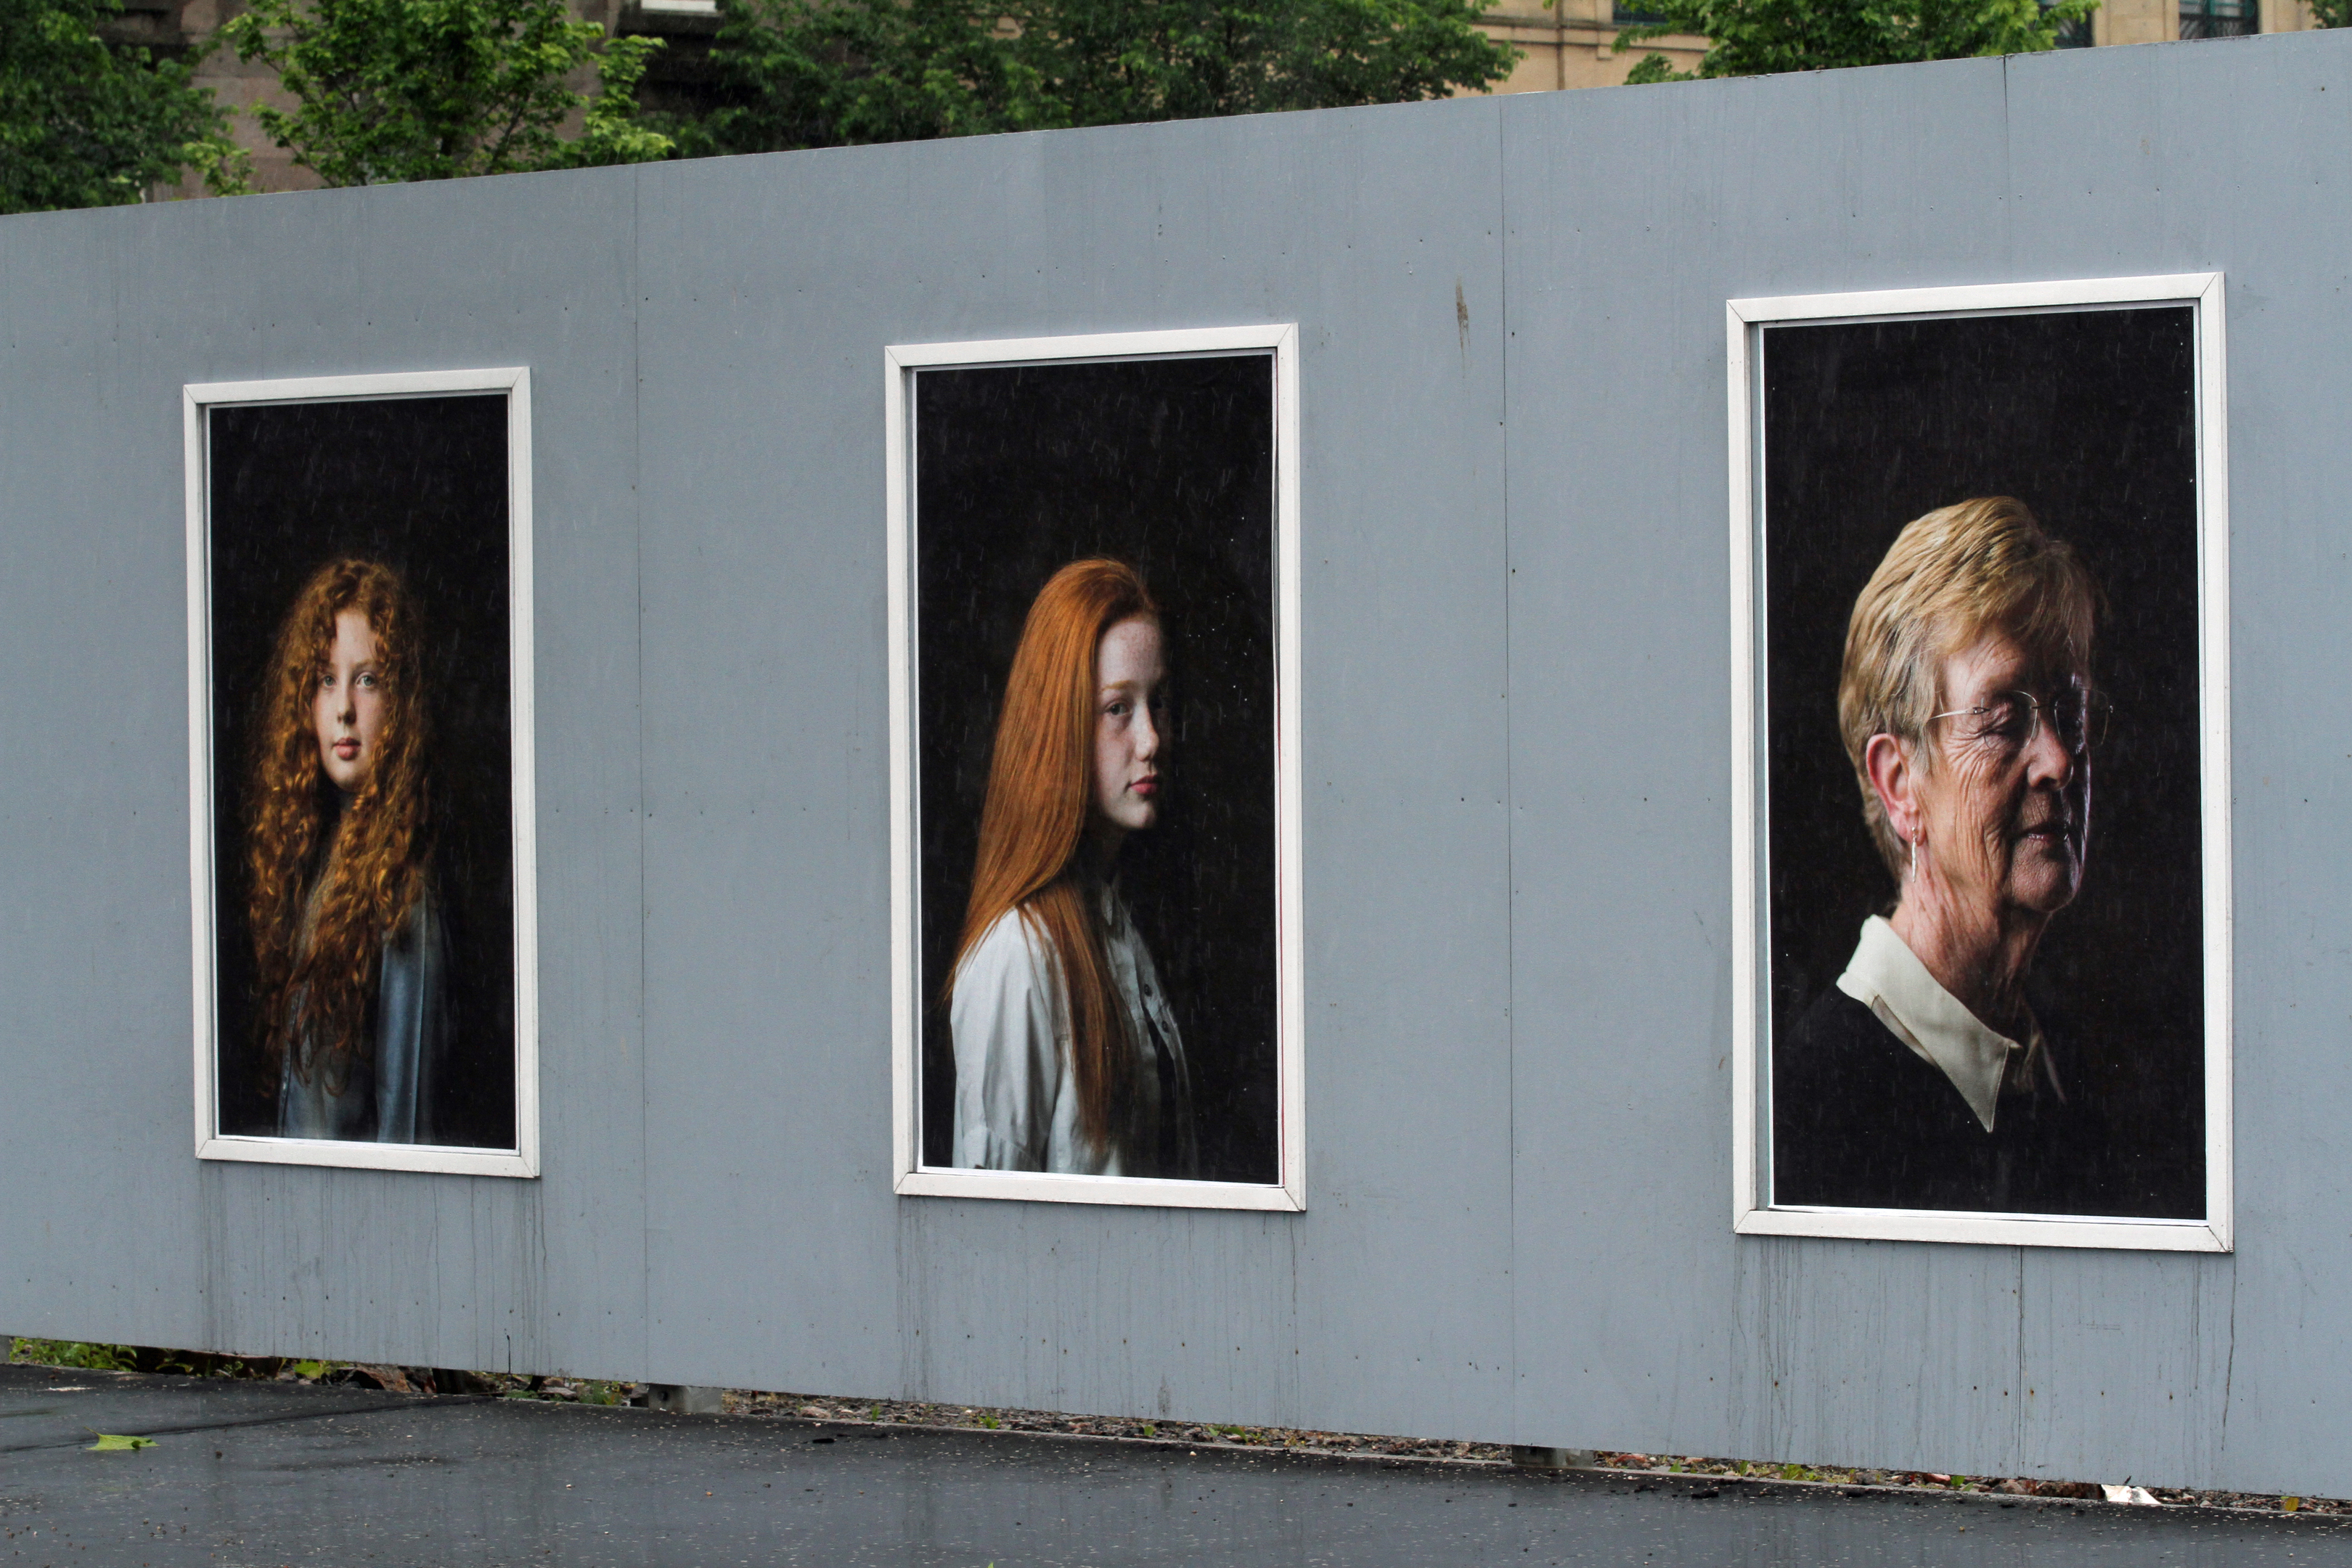 The exhibition features red-haired Dundonians from a variety of backgrounds and ages